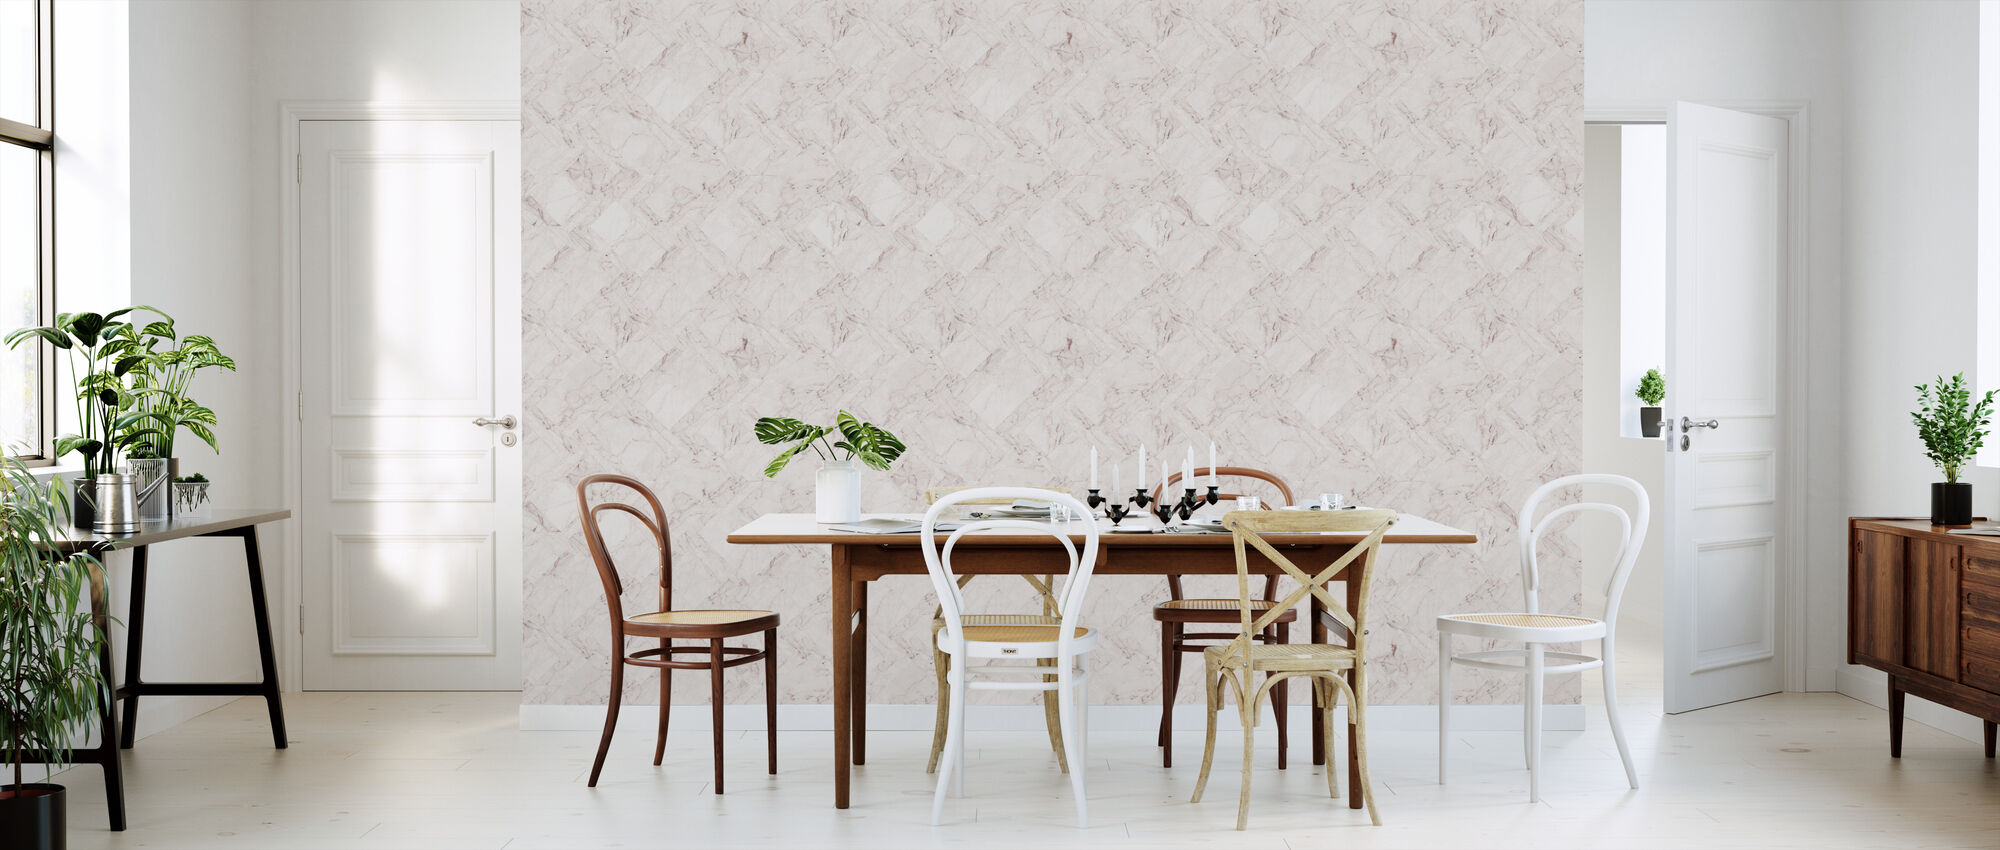 Marble Tiles - Pink - Wallpaper - Kitchen